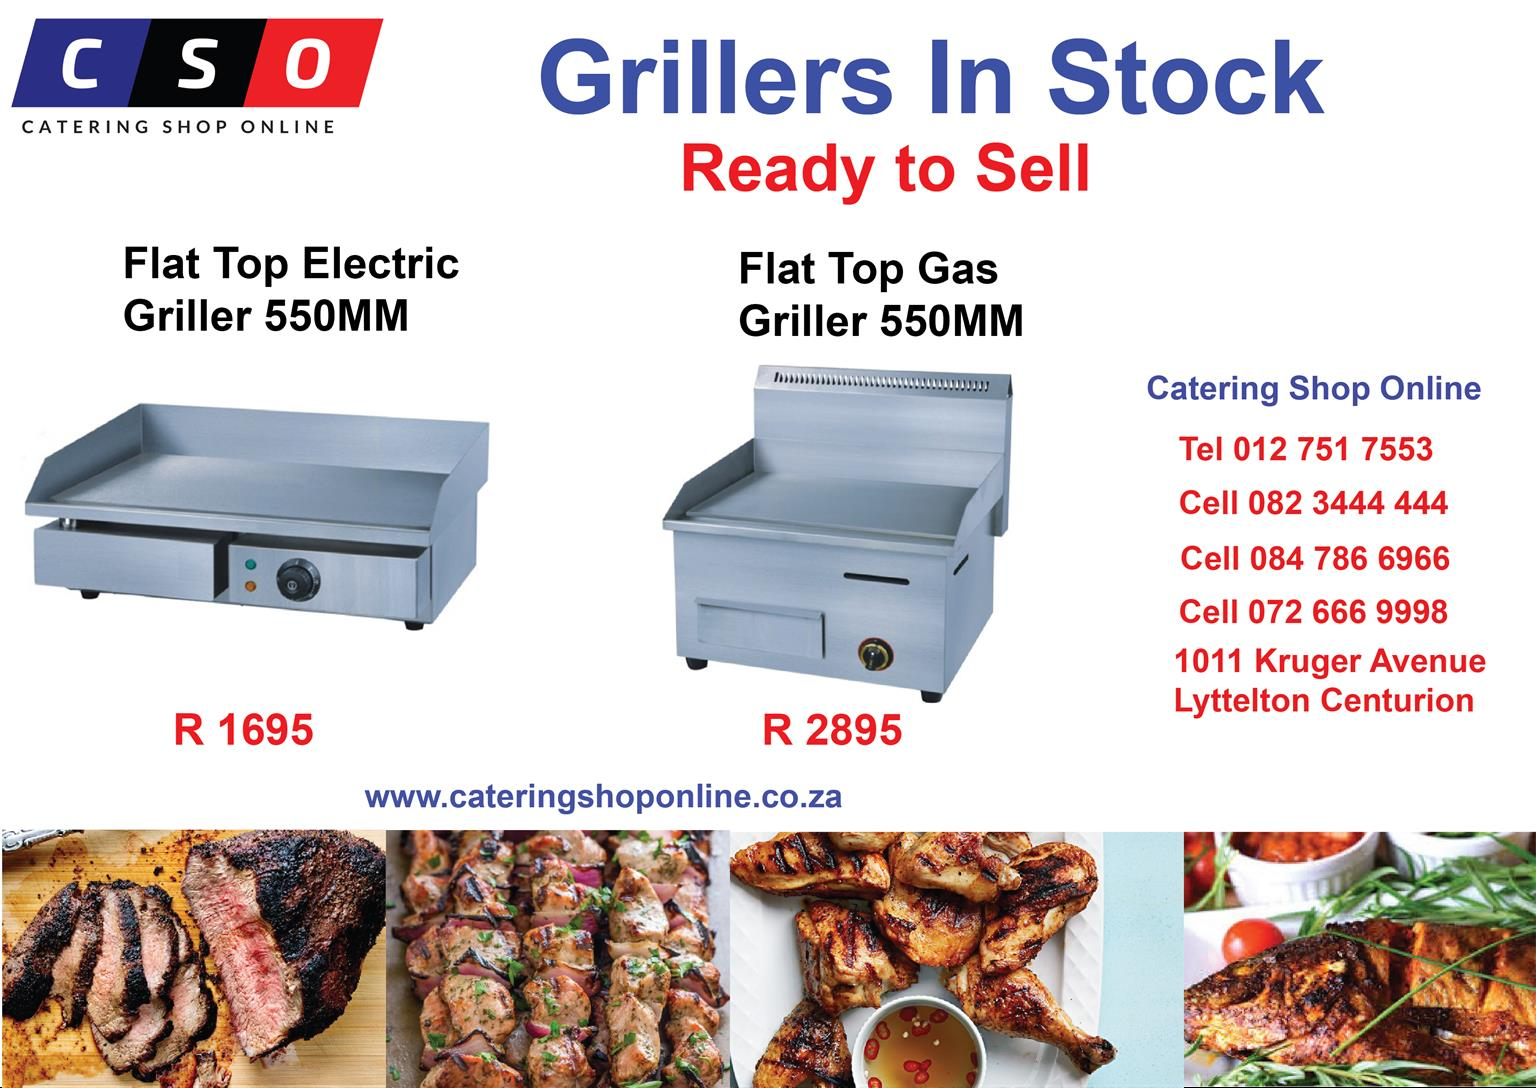 Grillers For Sale from R 1685